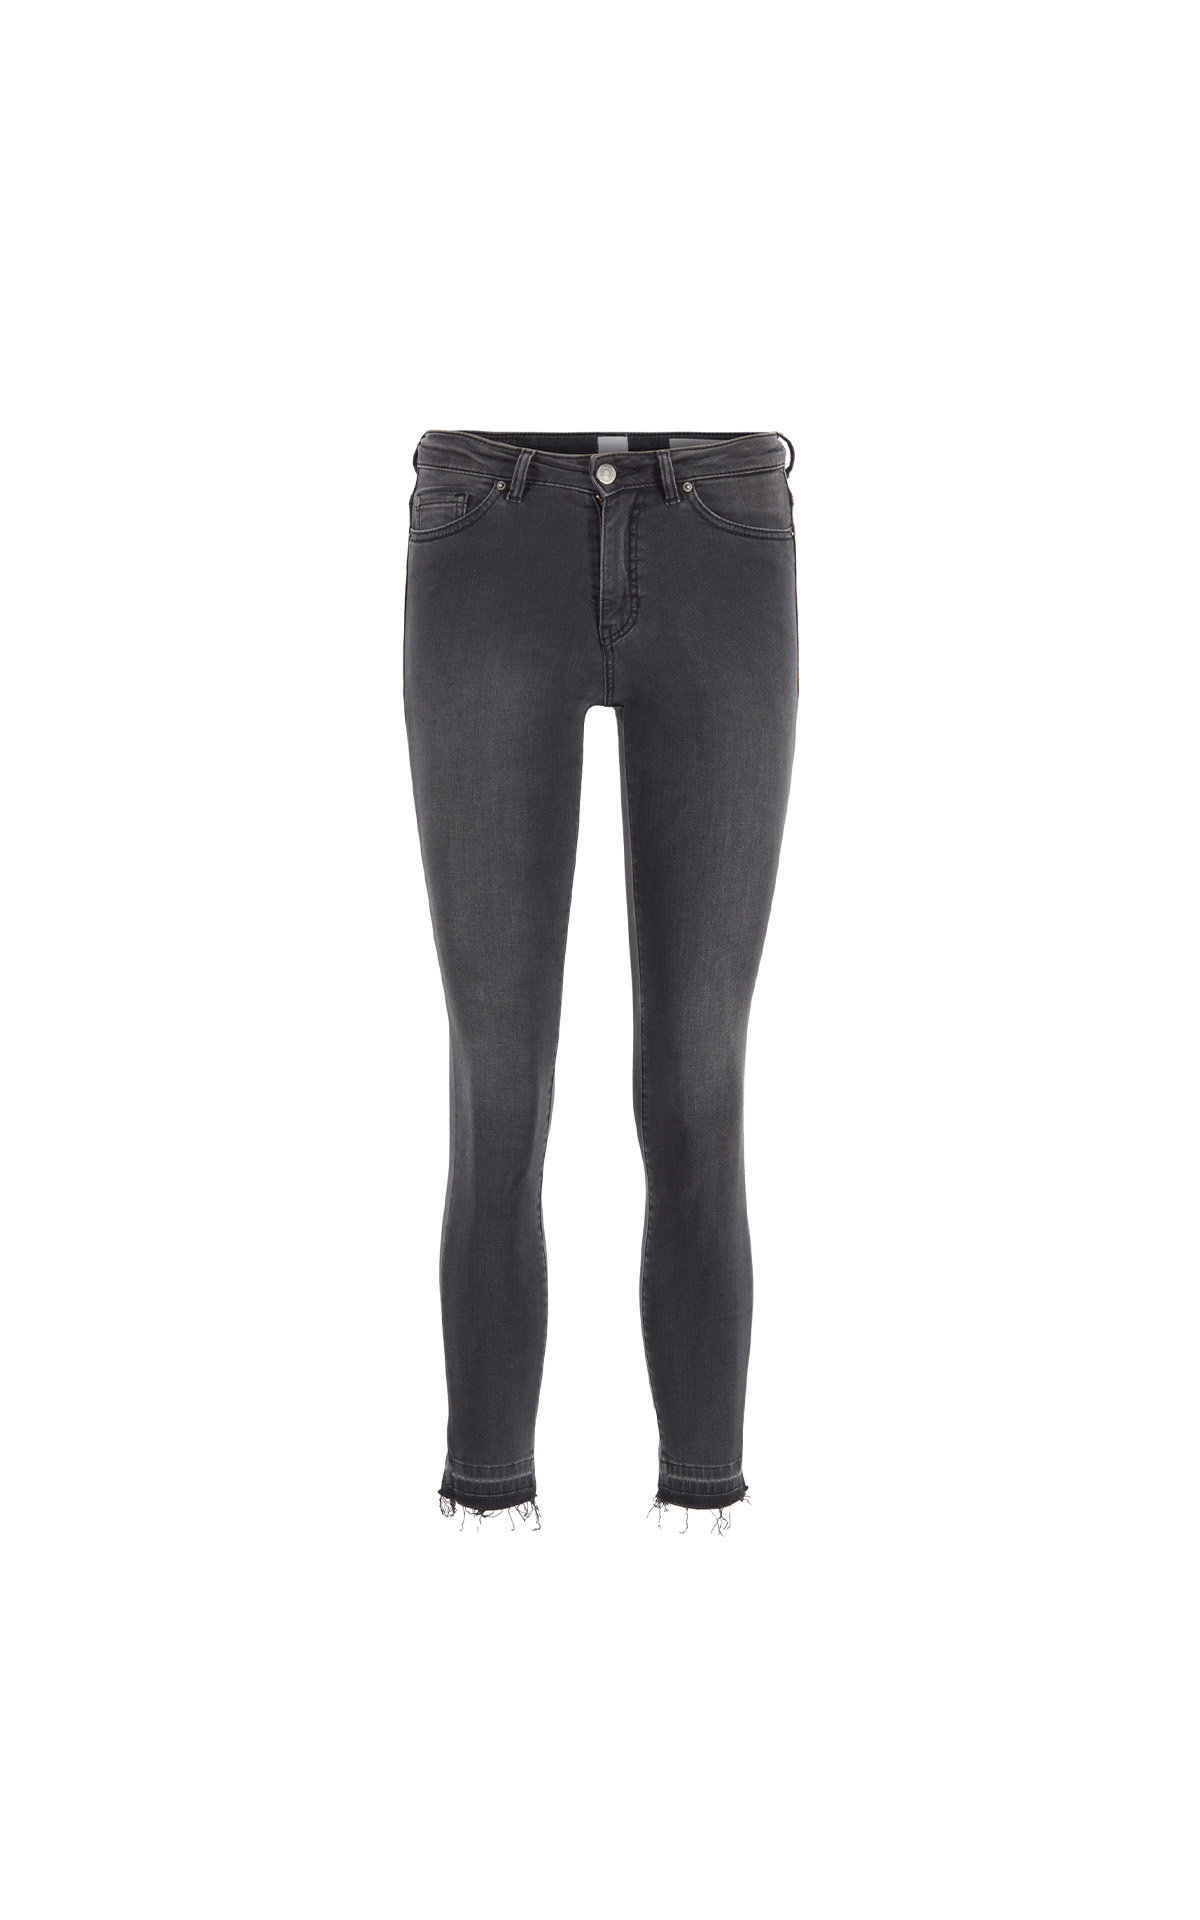 Boss J11 Bergamo Skinny-fit Jeans at The Bicester Village Shopping Collection